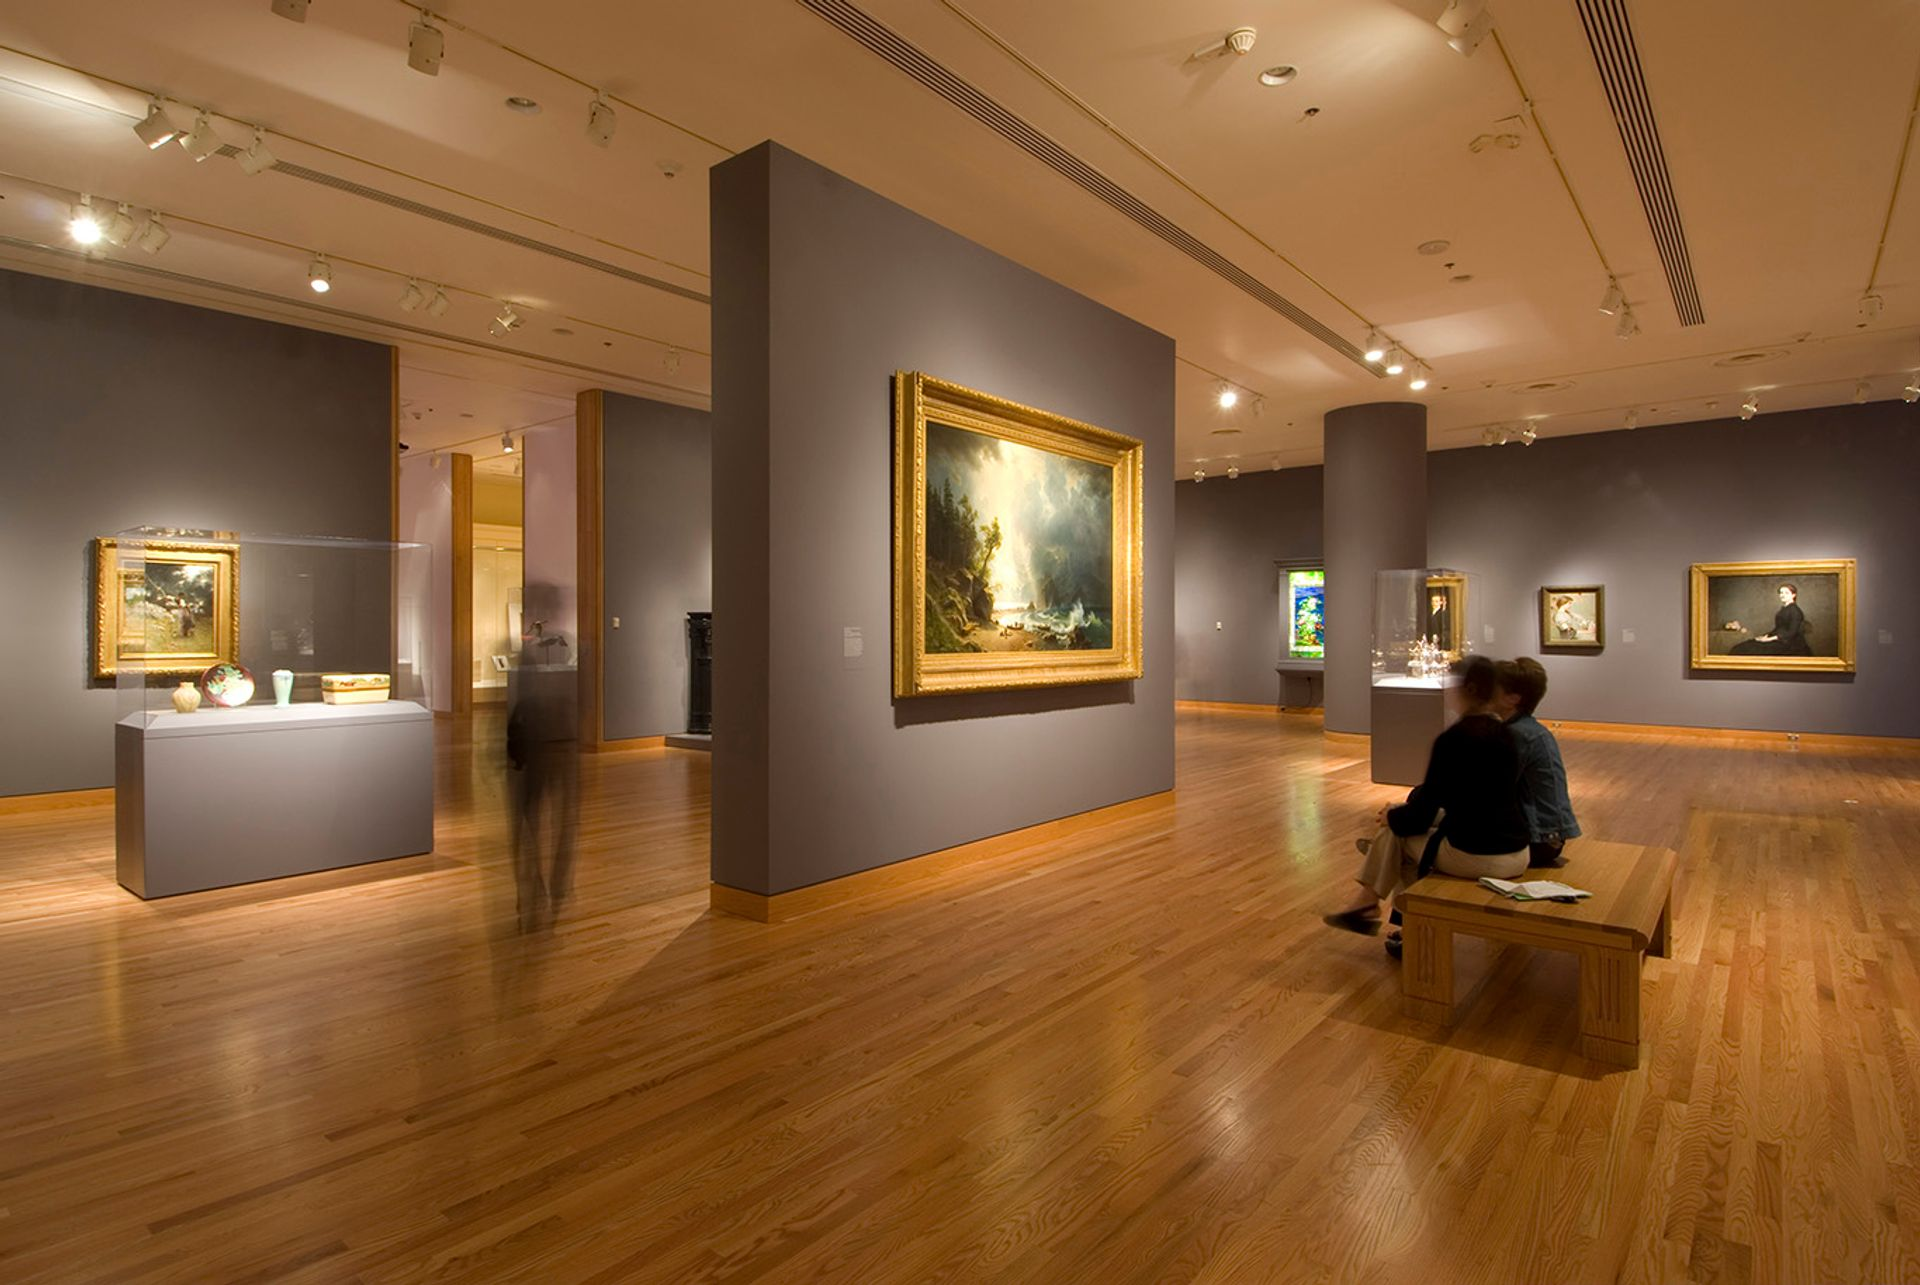 The Seattle Art Museum's American galleries, described by their curator as presenting a limited view of art history Tim Aguero